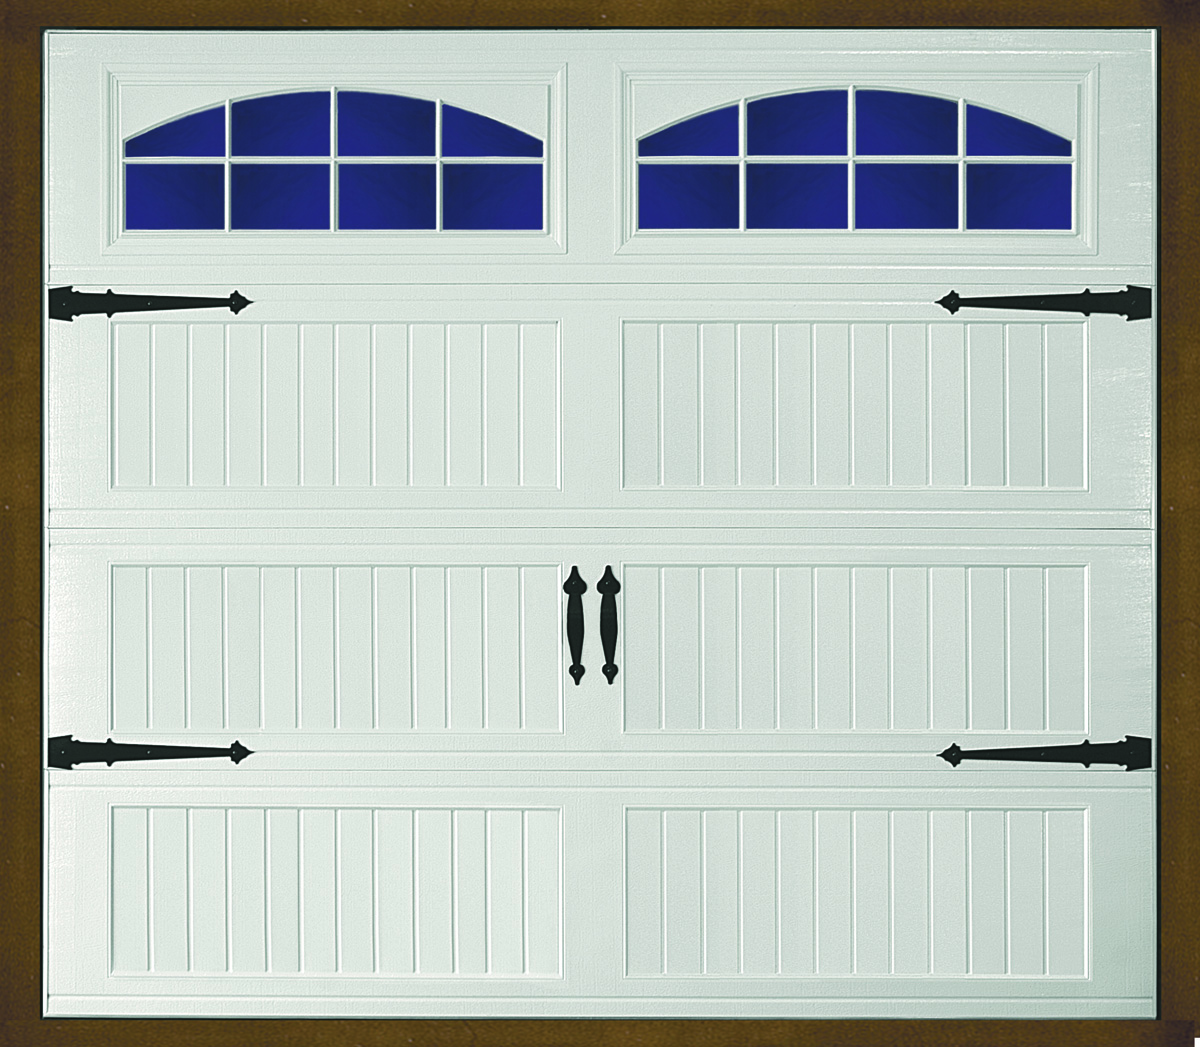 Stamped Doors Are Typically The Most Por Option As They More Economical And Affordable Choice